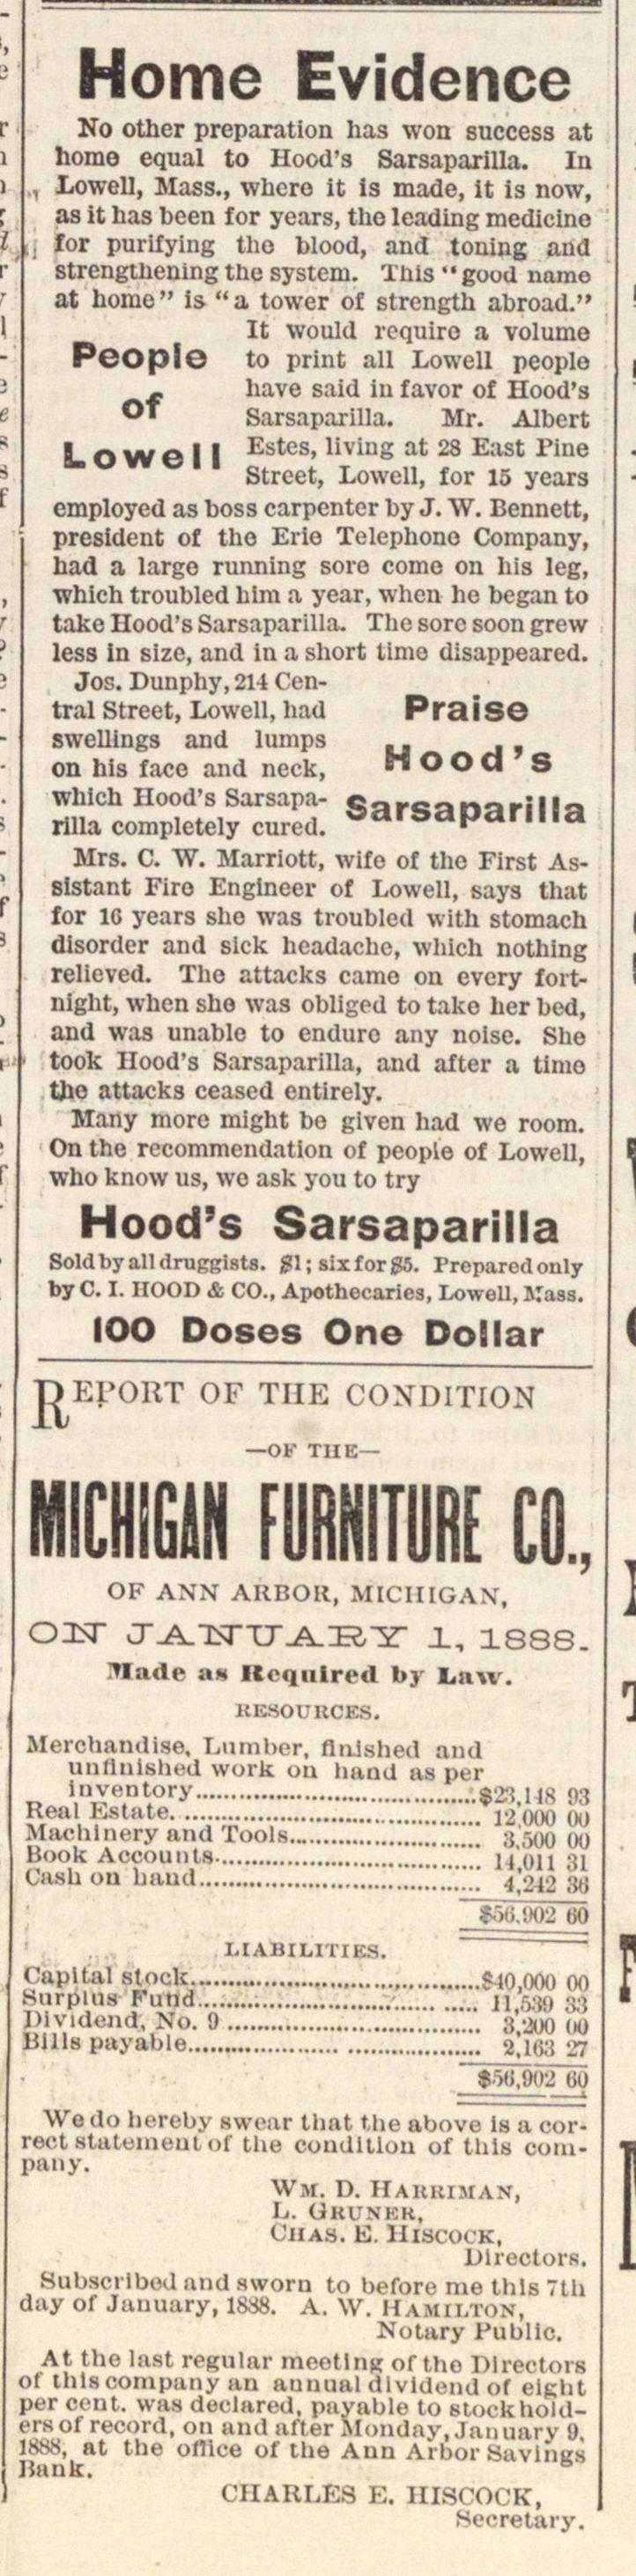 Hood's Sarsaparilla & Michigan Furniture Co. image